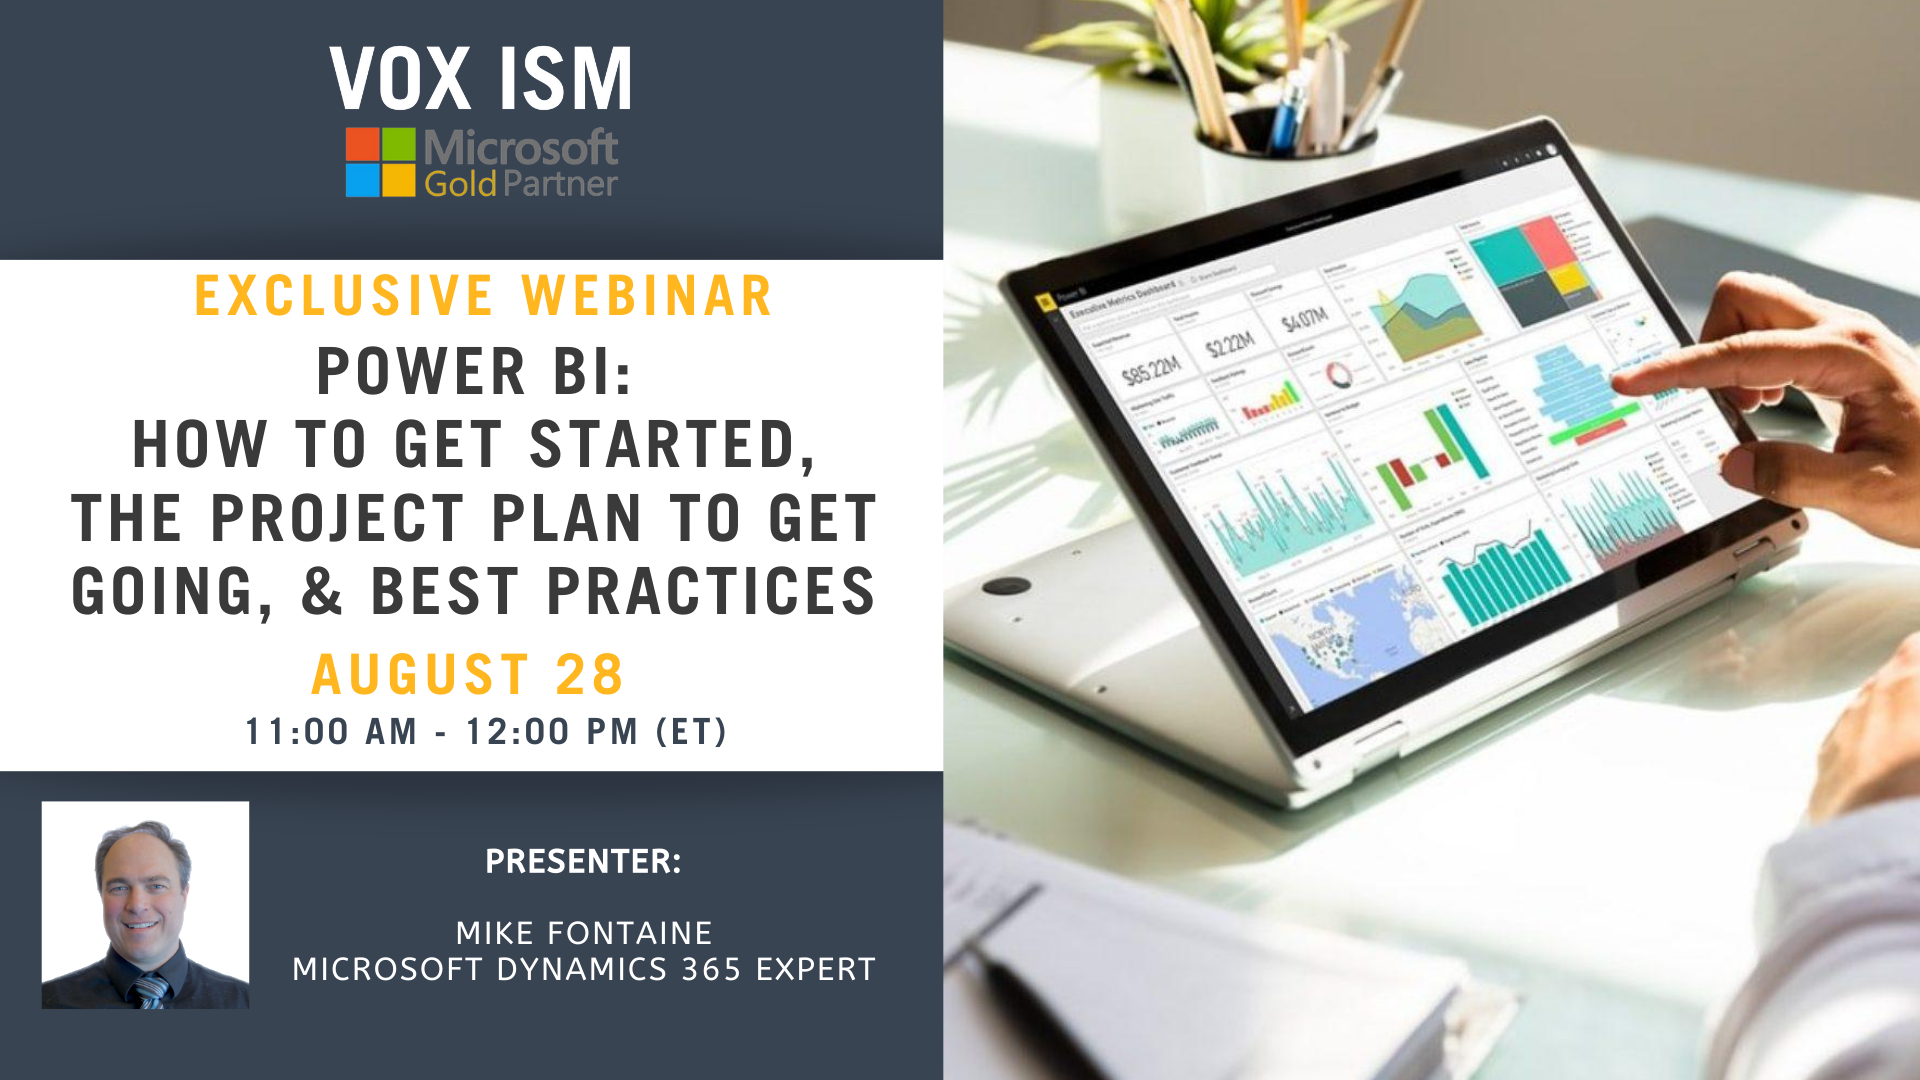 Power BI - How to Get Started, The Project Plan to Get Going, & Best Practices - August 27 - Webinar